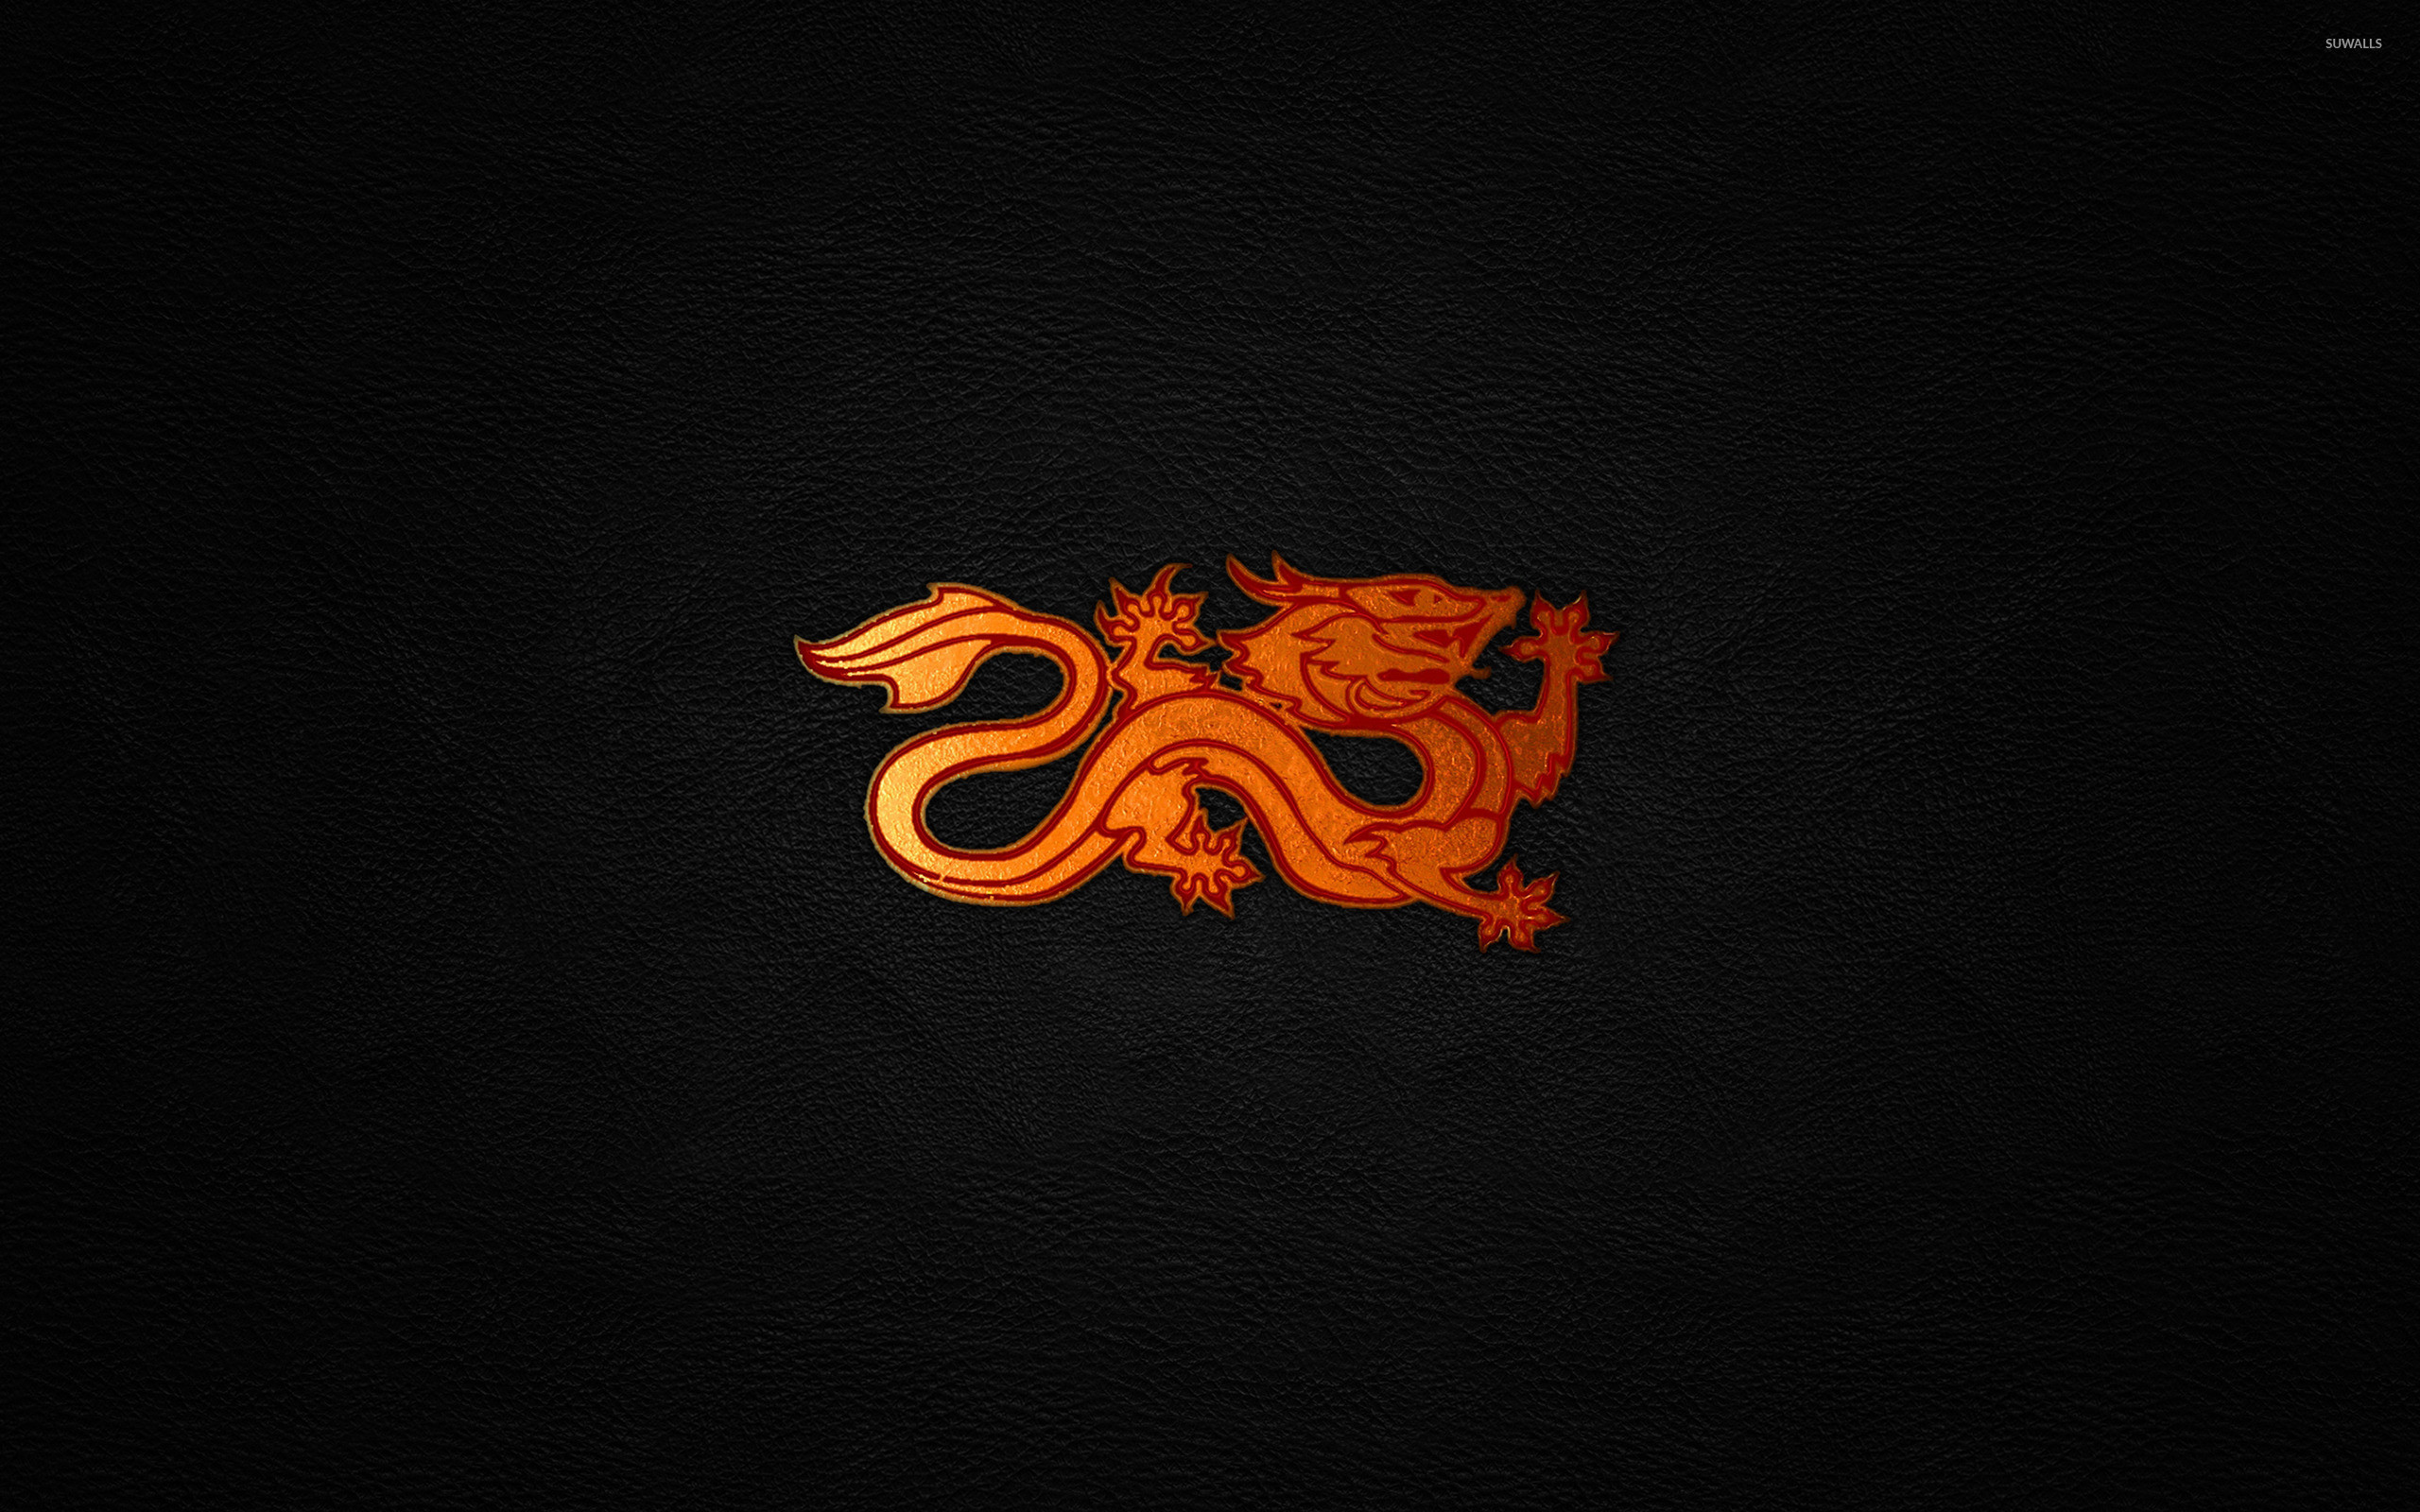 Red dragon on leather wallpaper jpg